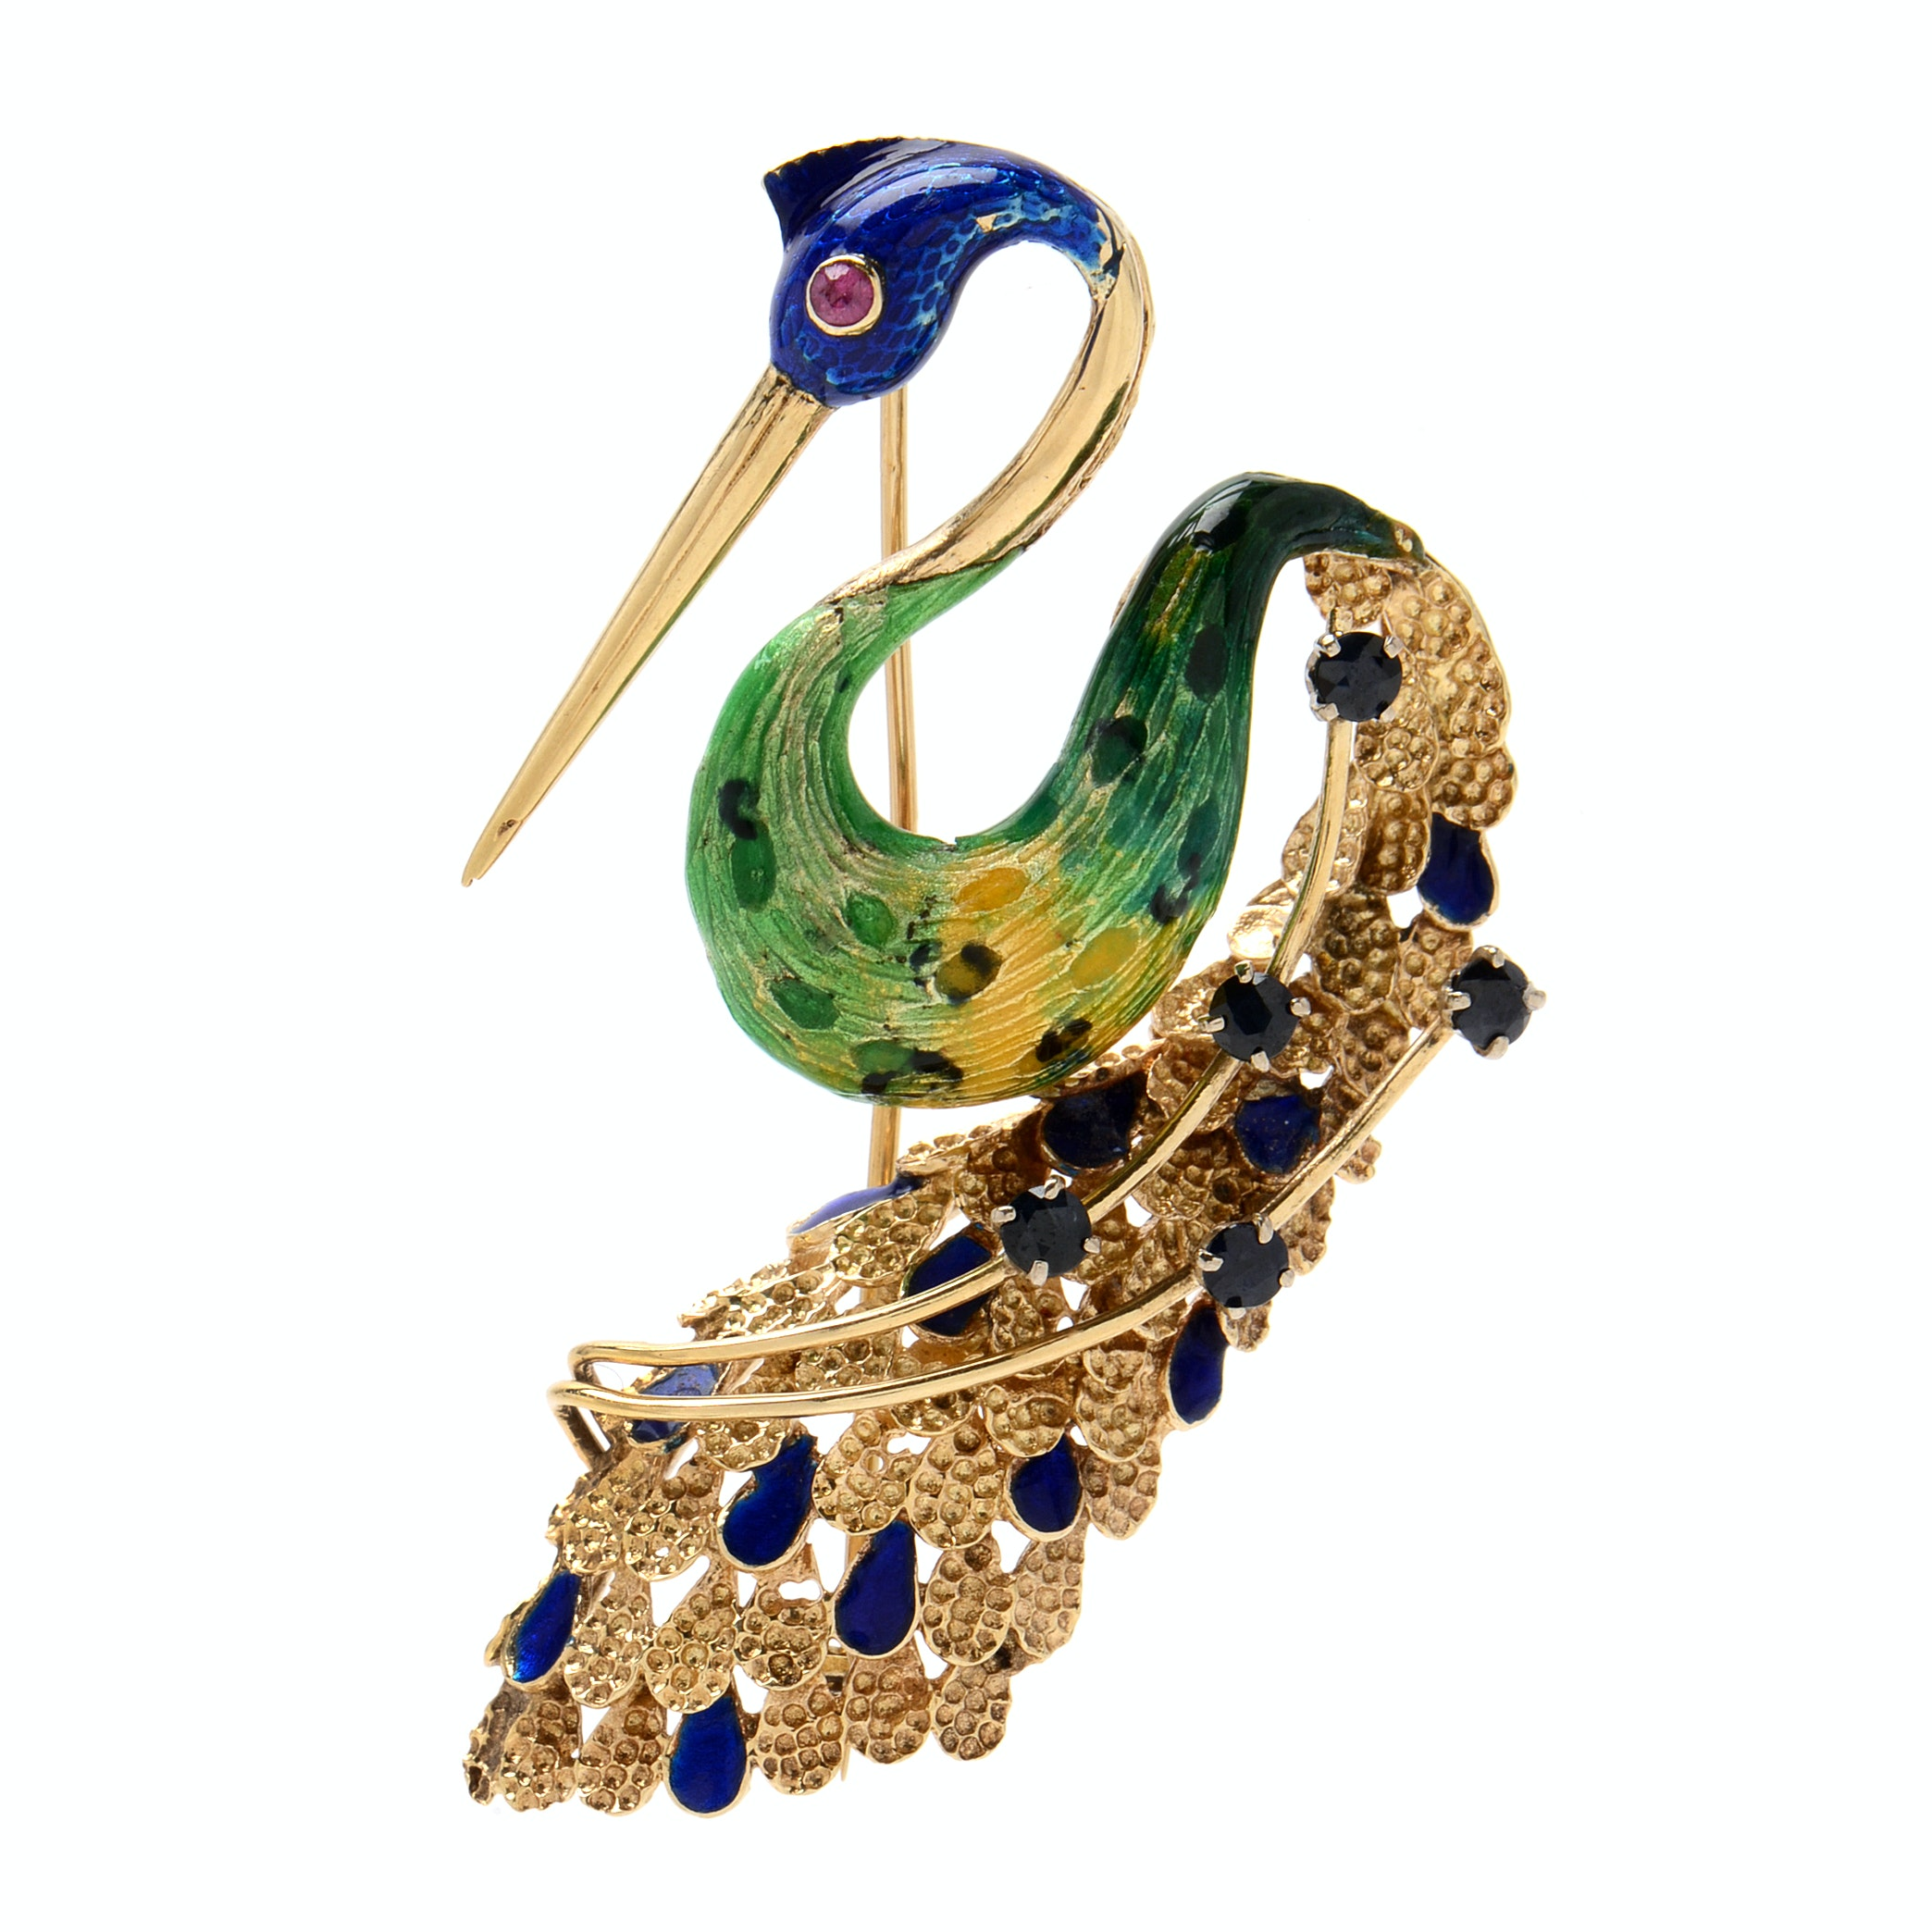 14K Yellow Gold Blue Sapphire, Ruby and Enamel Peacock Brooch